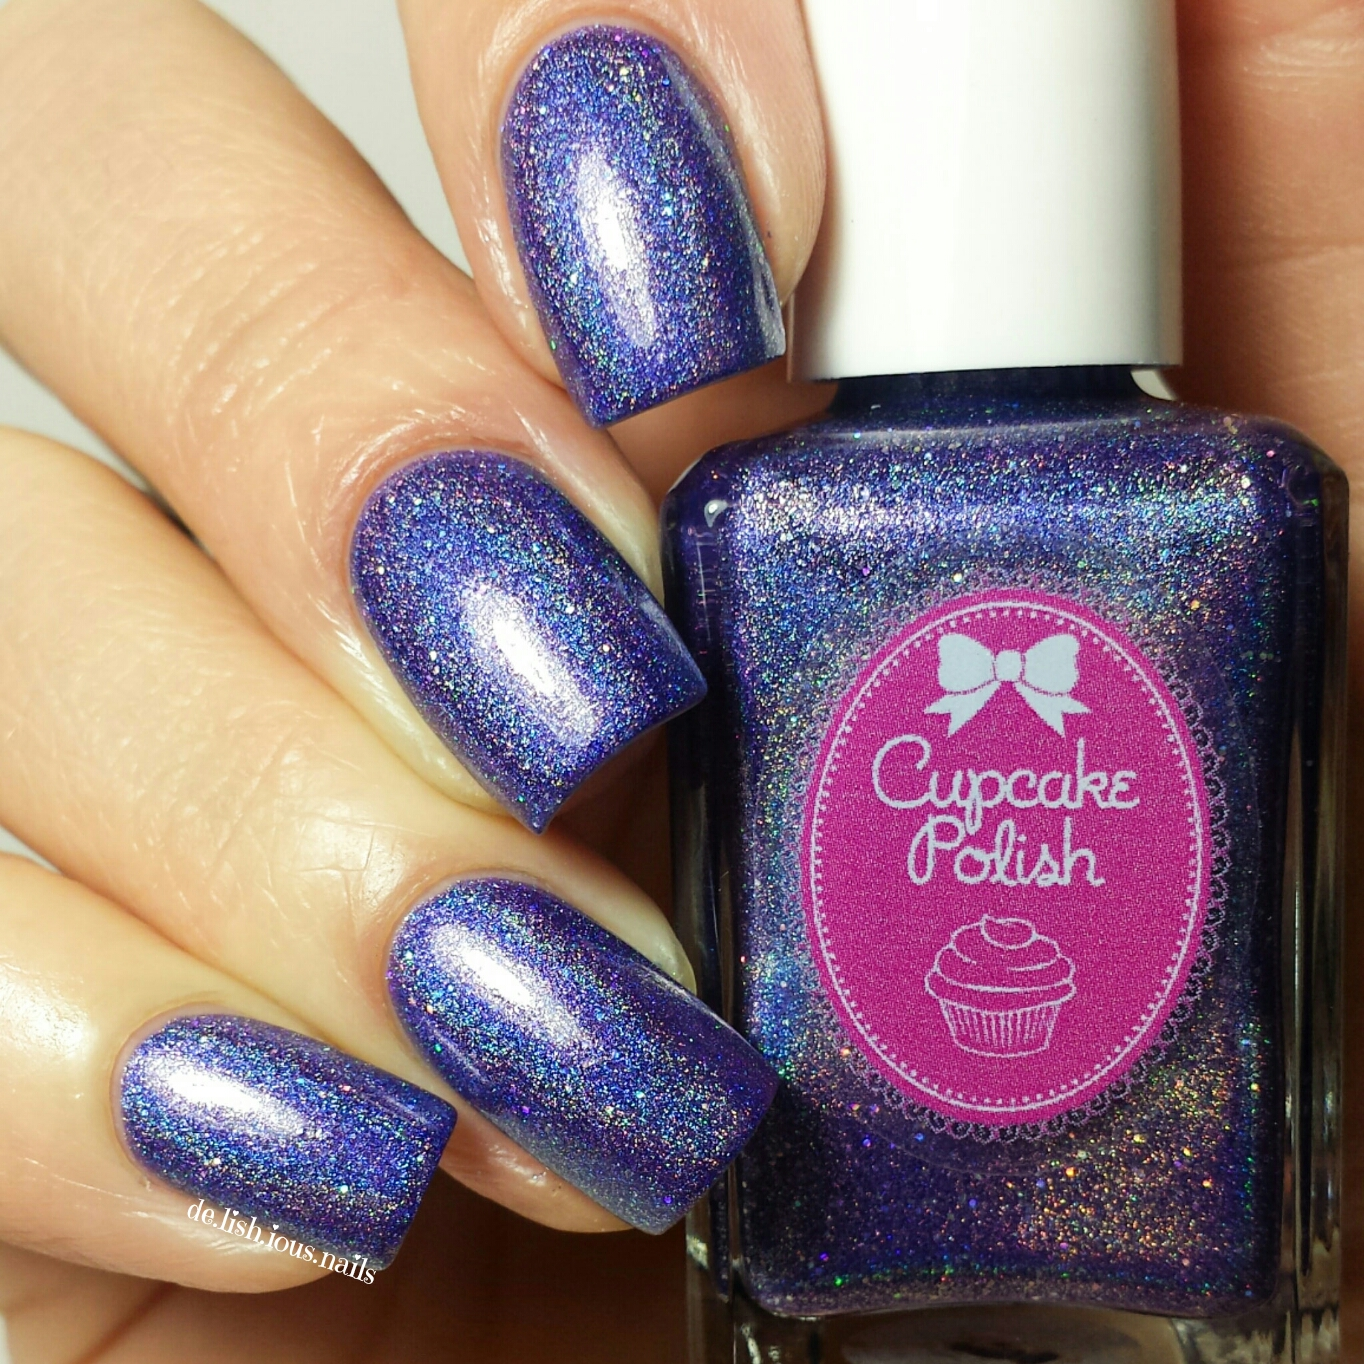 wpid-cupcake-polish-winter-2015-peace-2.jpg.jpeg